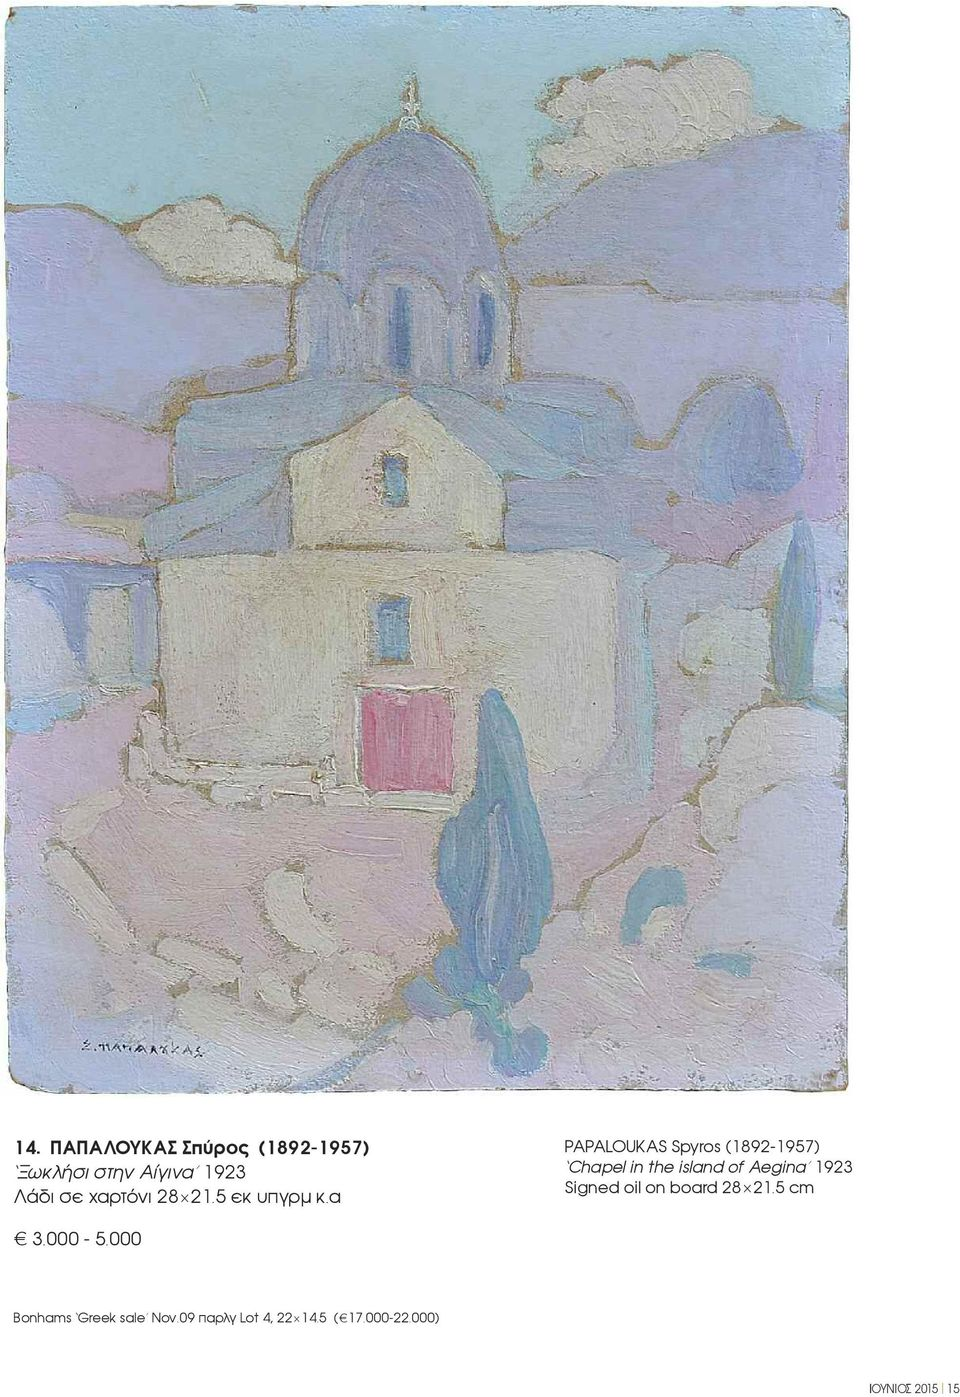 α PAPALOUKAS Spyros (1892-1957) Chapel in the island of Aegina 1923